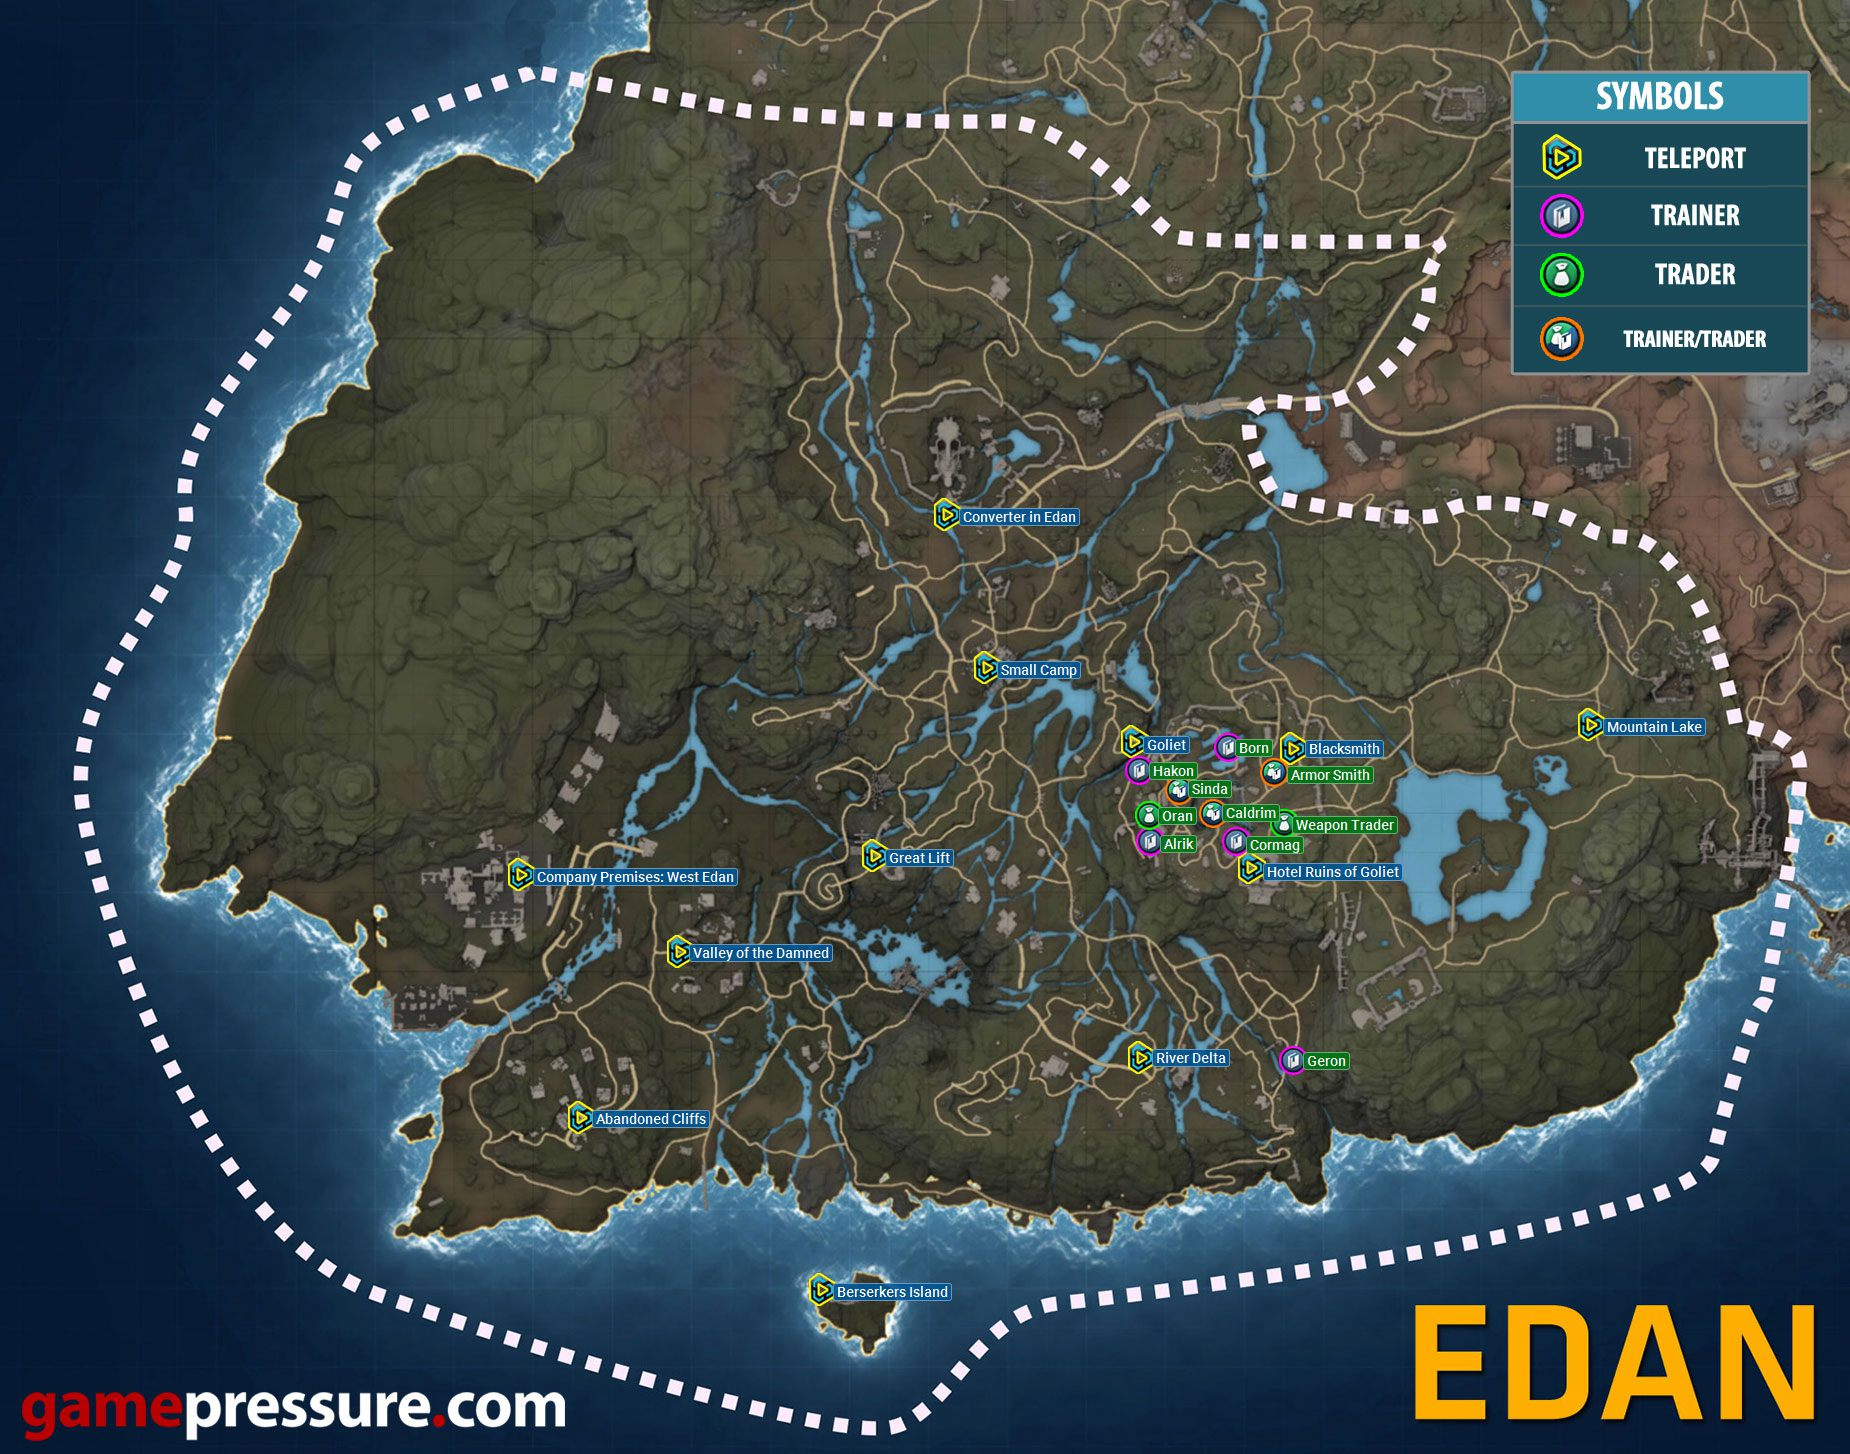 Elex - Atlas - Map of Edan